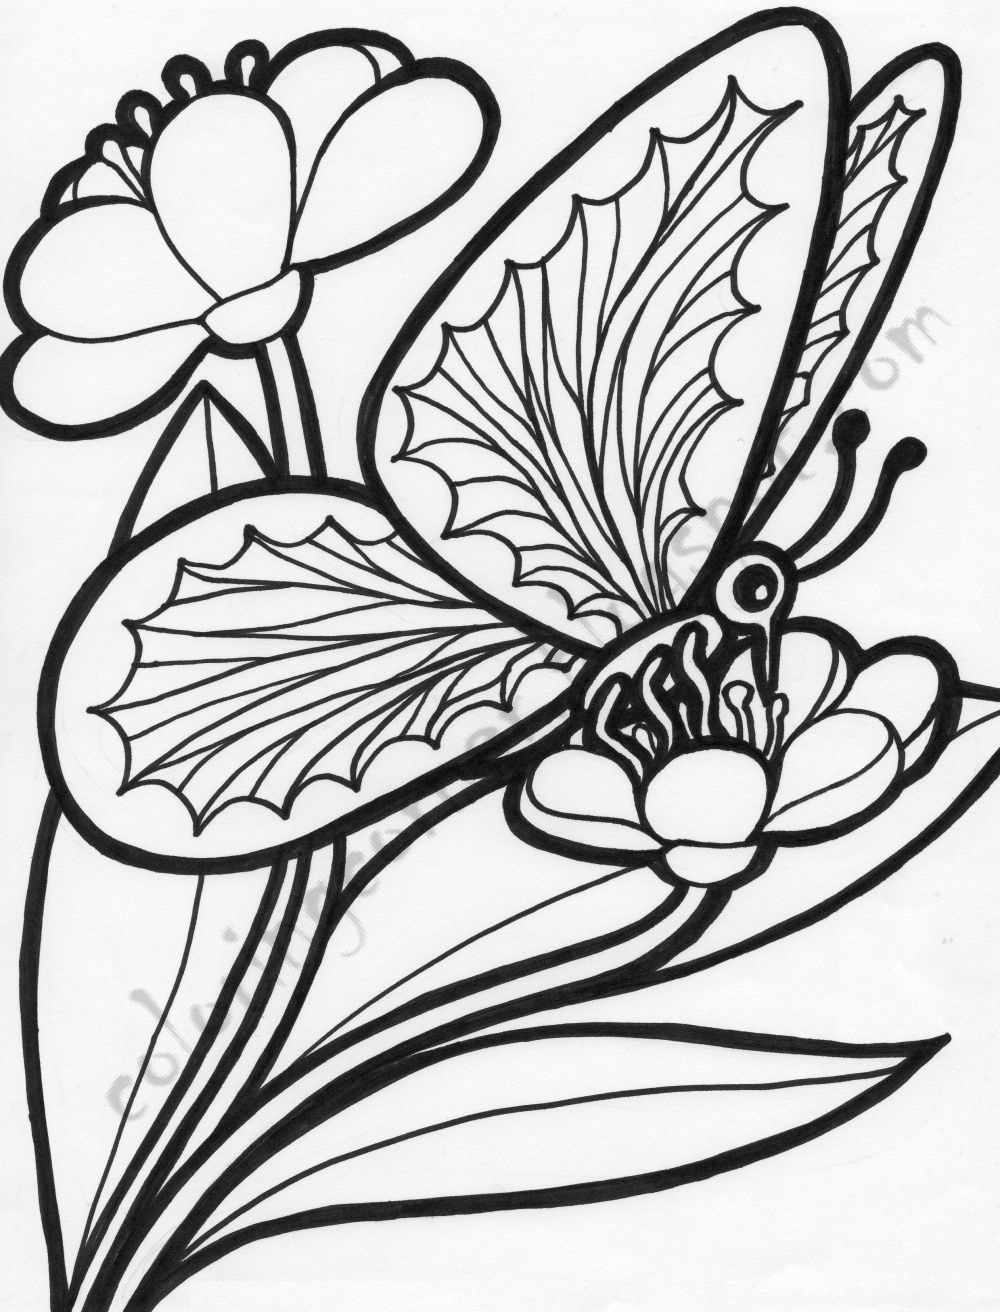 Nerdy image with butterfly printable coloring pages